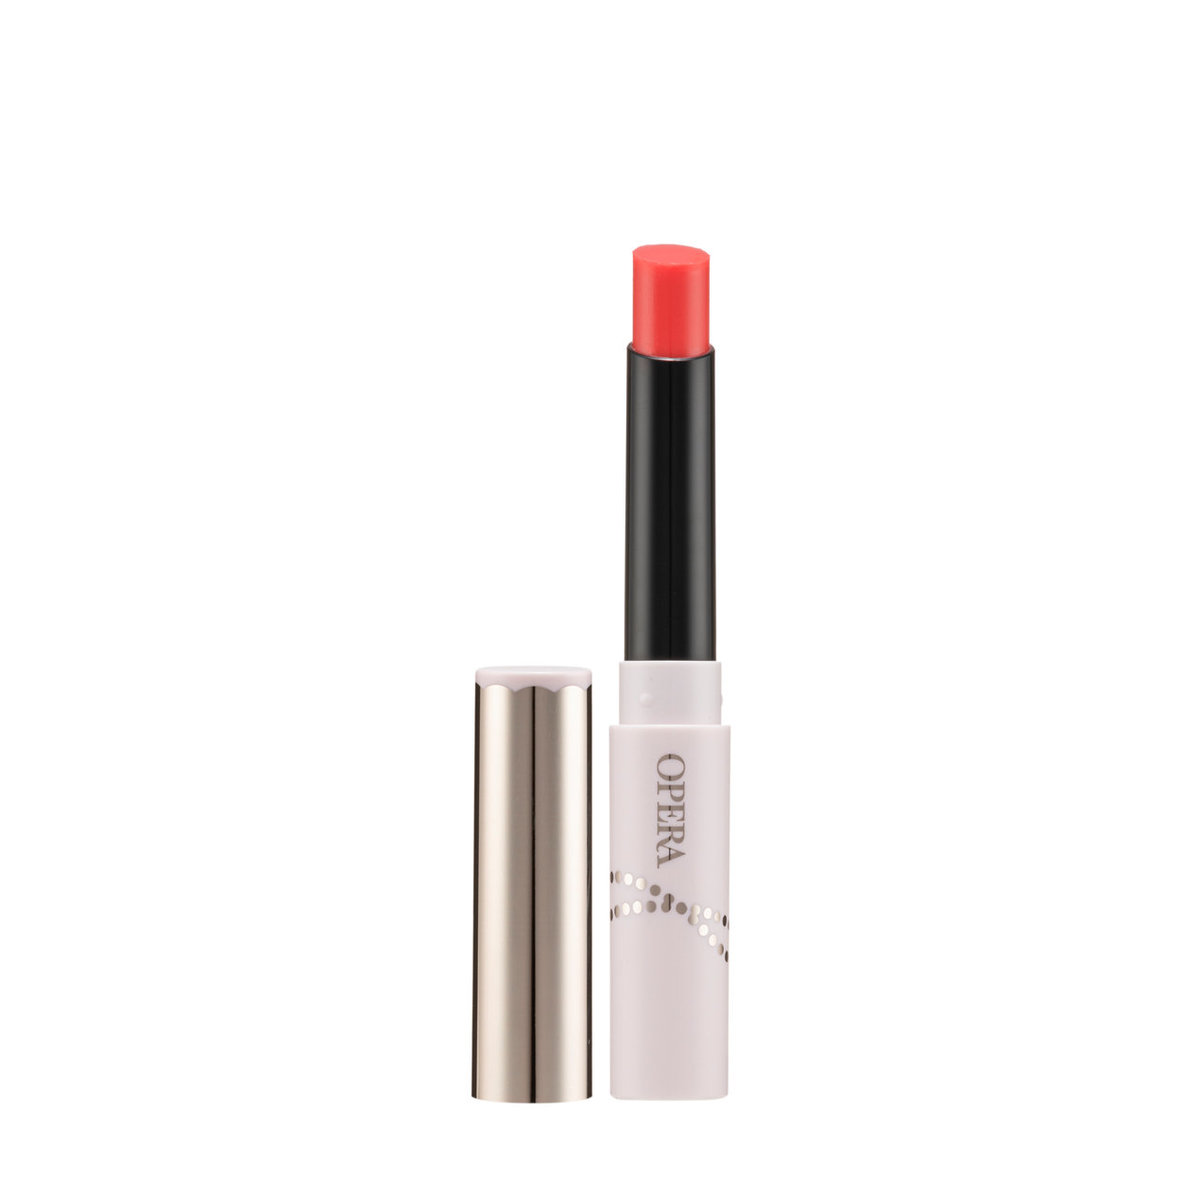 Sheer Lip Color (205 Mauve Red) (1.2g)